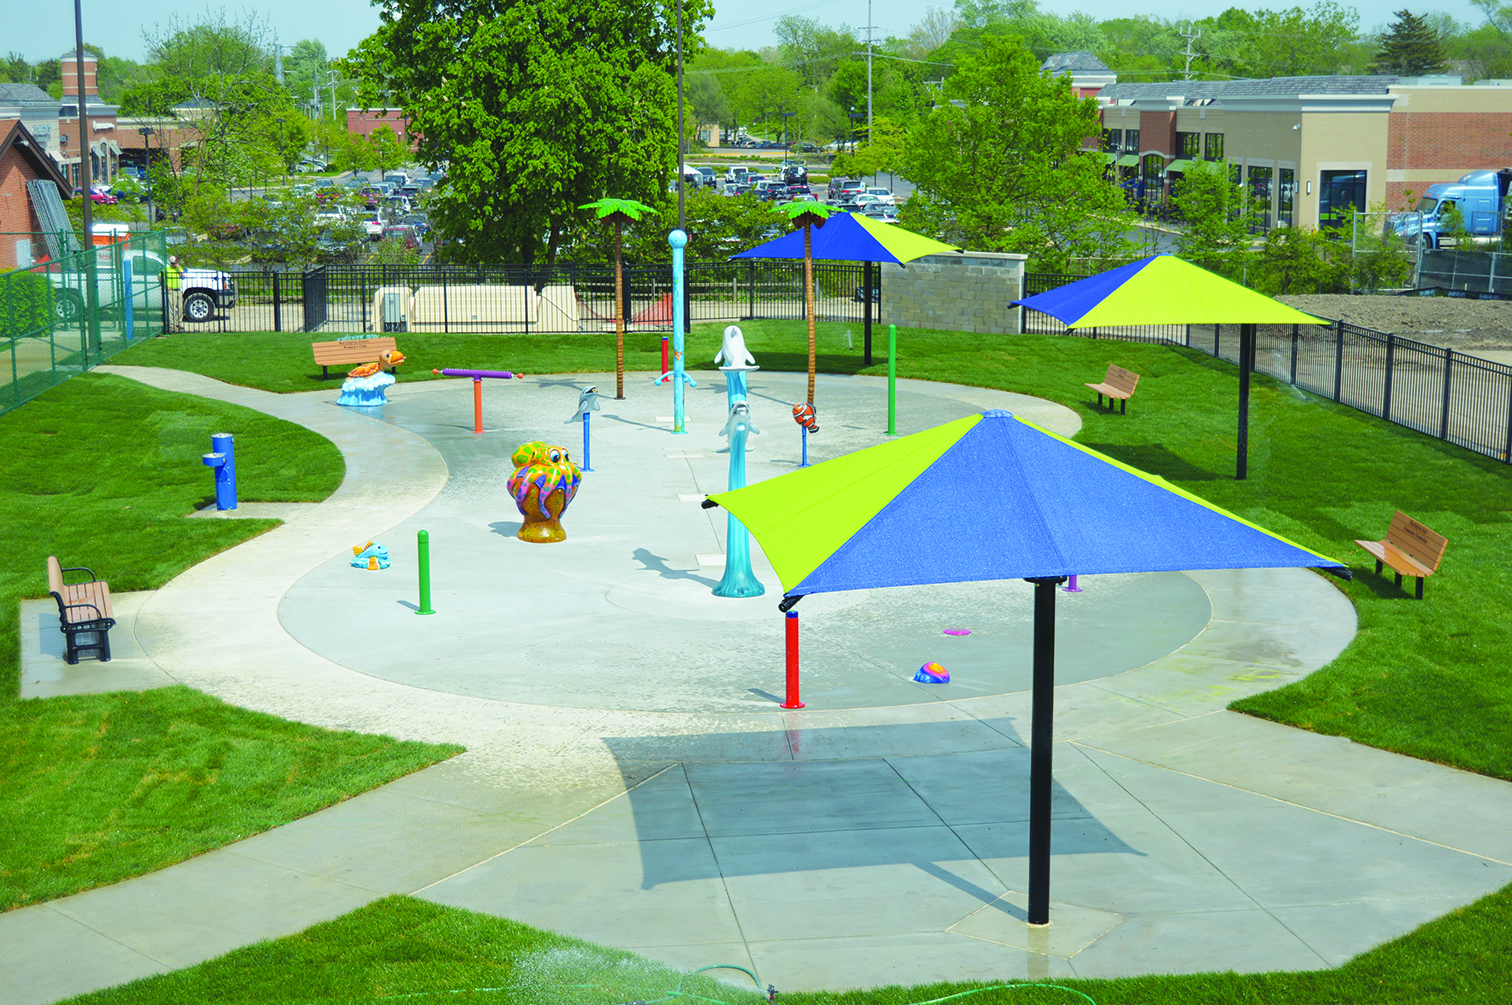 Splashpad aerial view. Features include multiple sprinklers and water spouts, mounted waterguns, seating, and shaded areas.